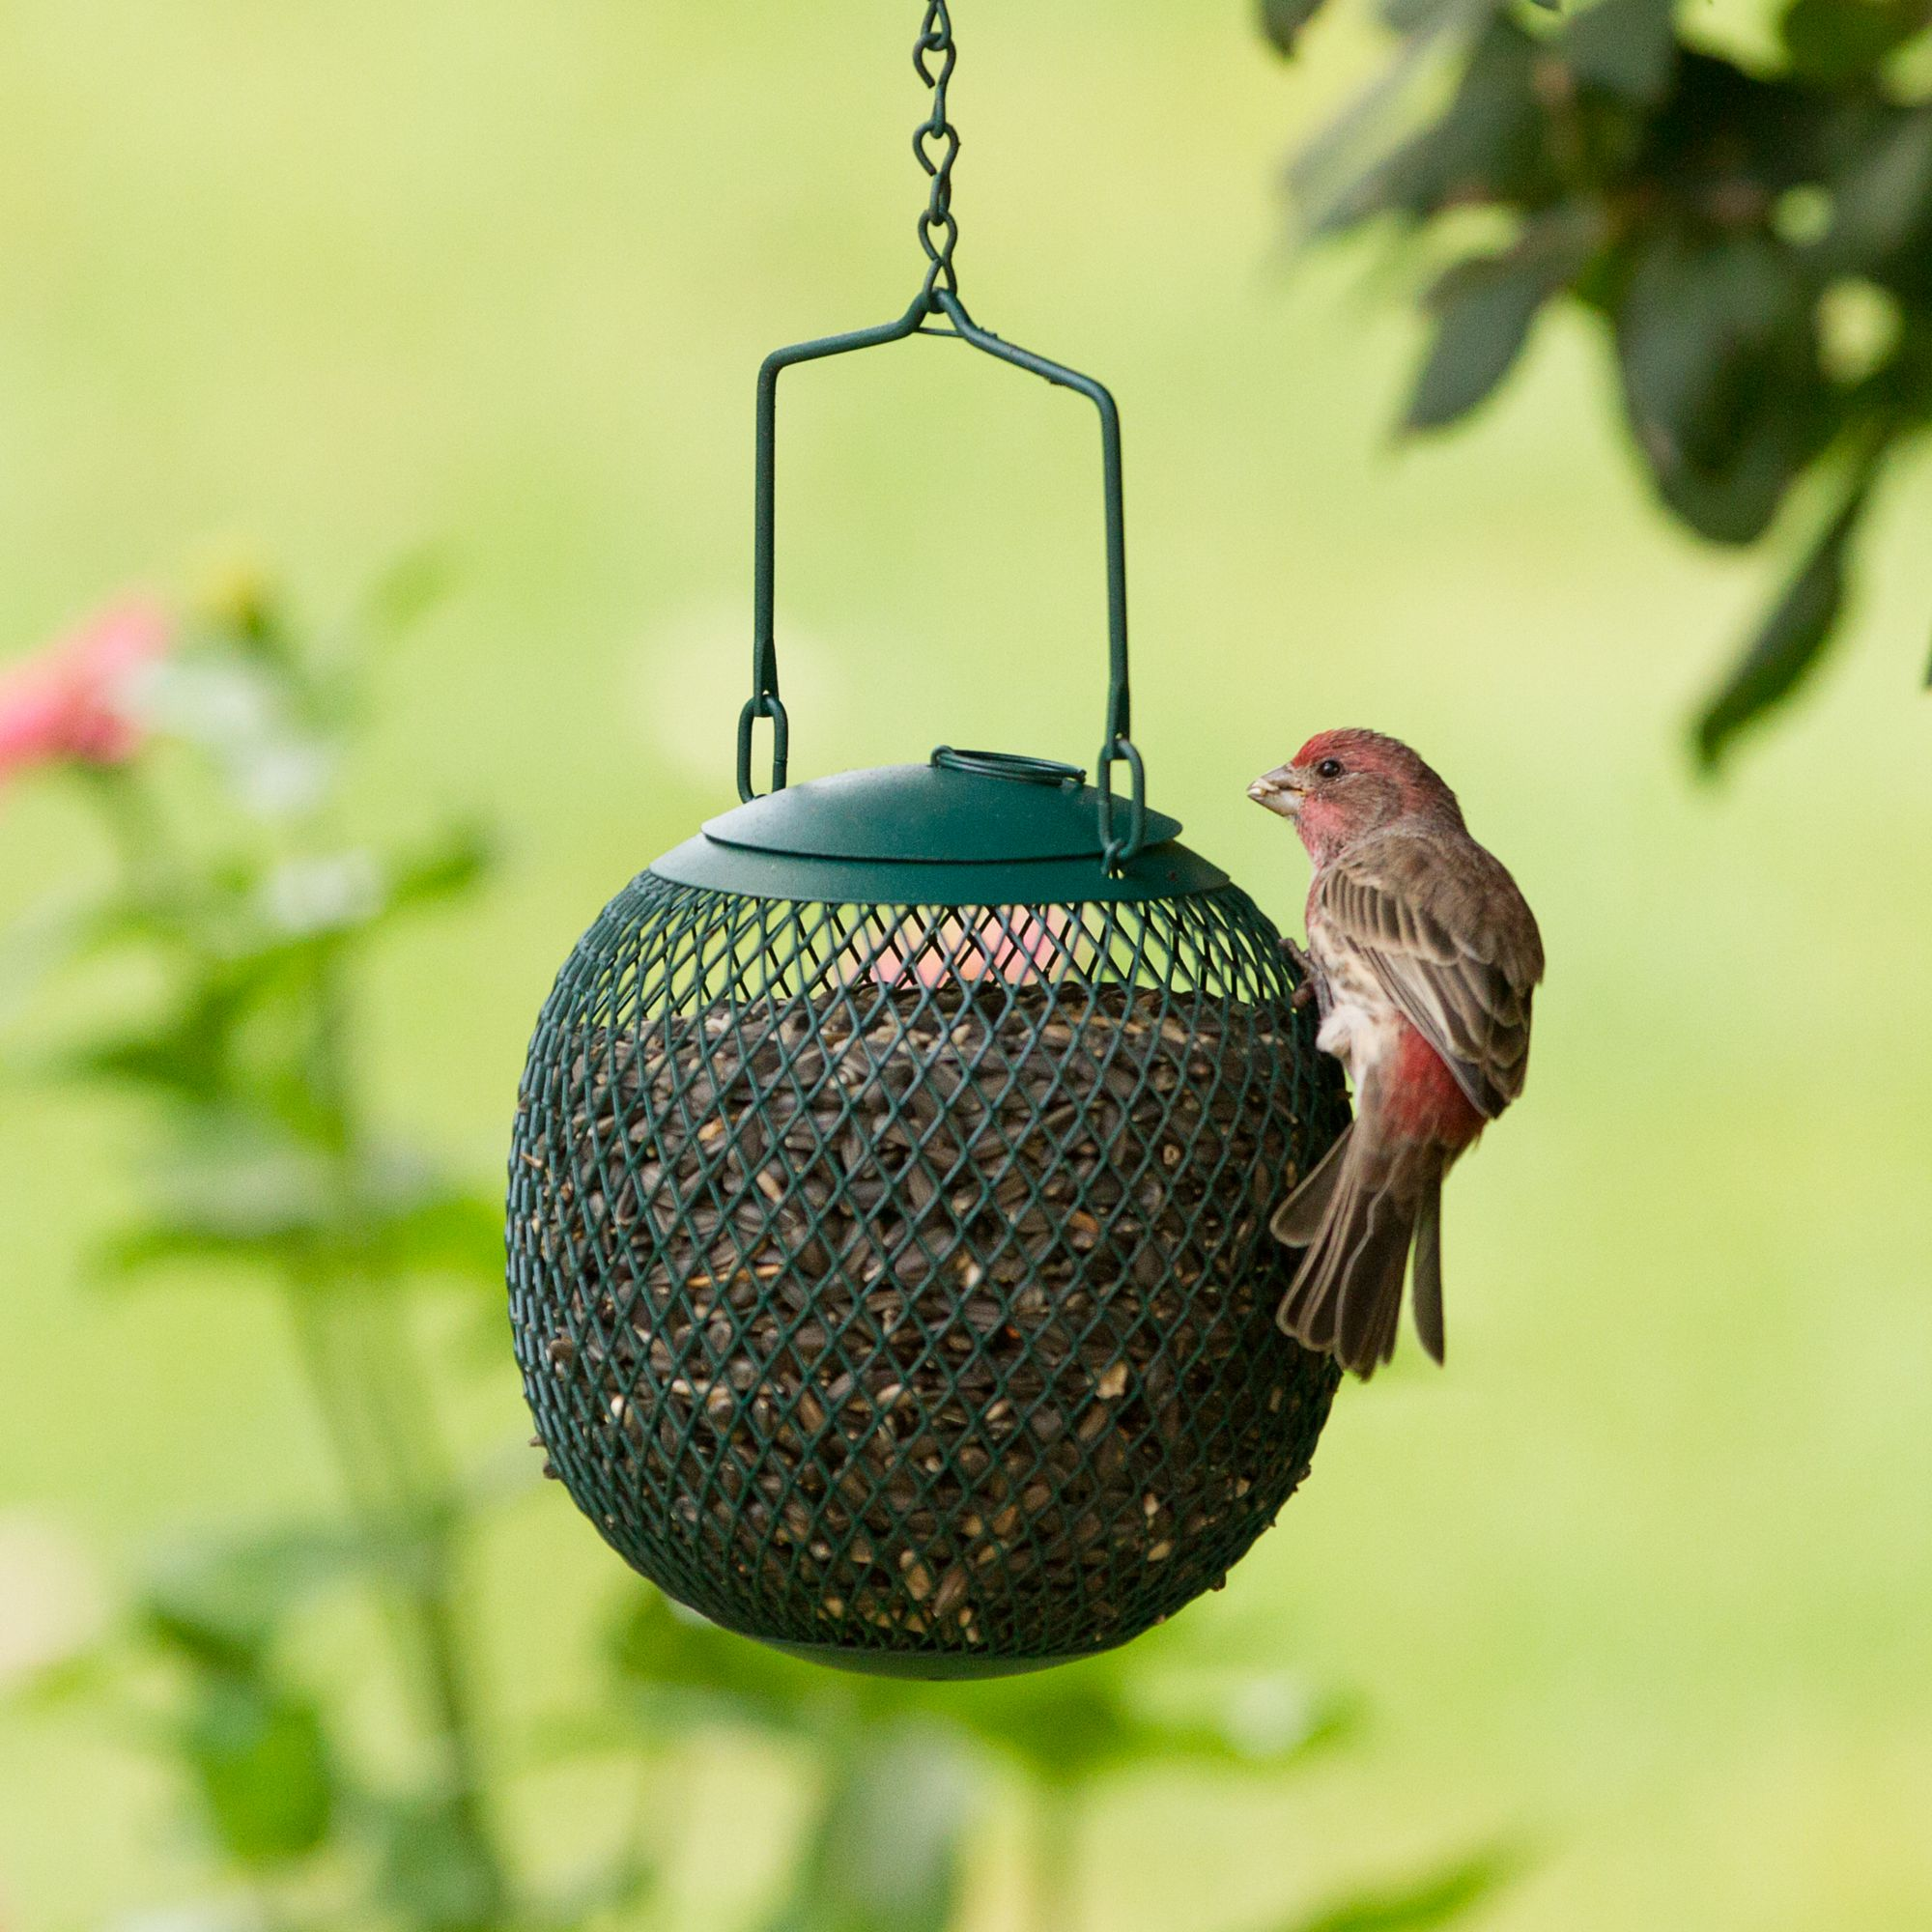 summer coffee own your and inspiration expensive craft bird make feeders pin pinterest hometalk mug feeder